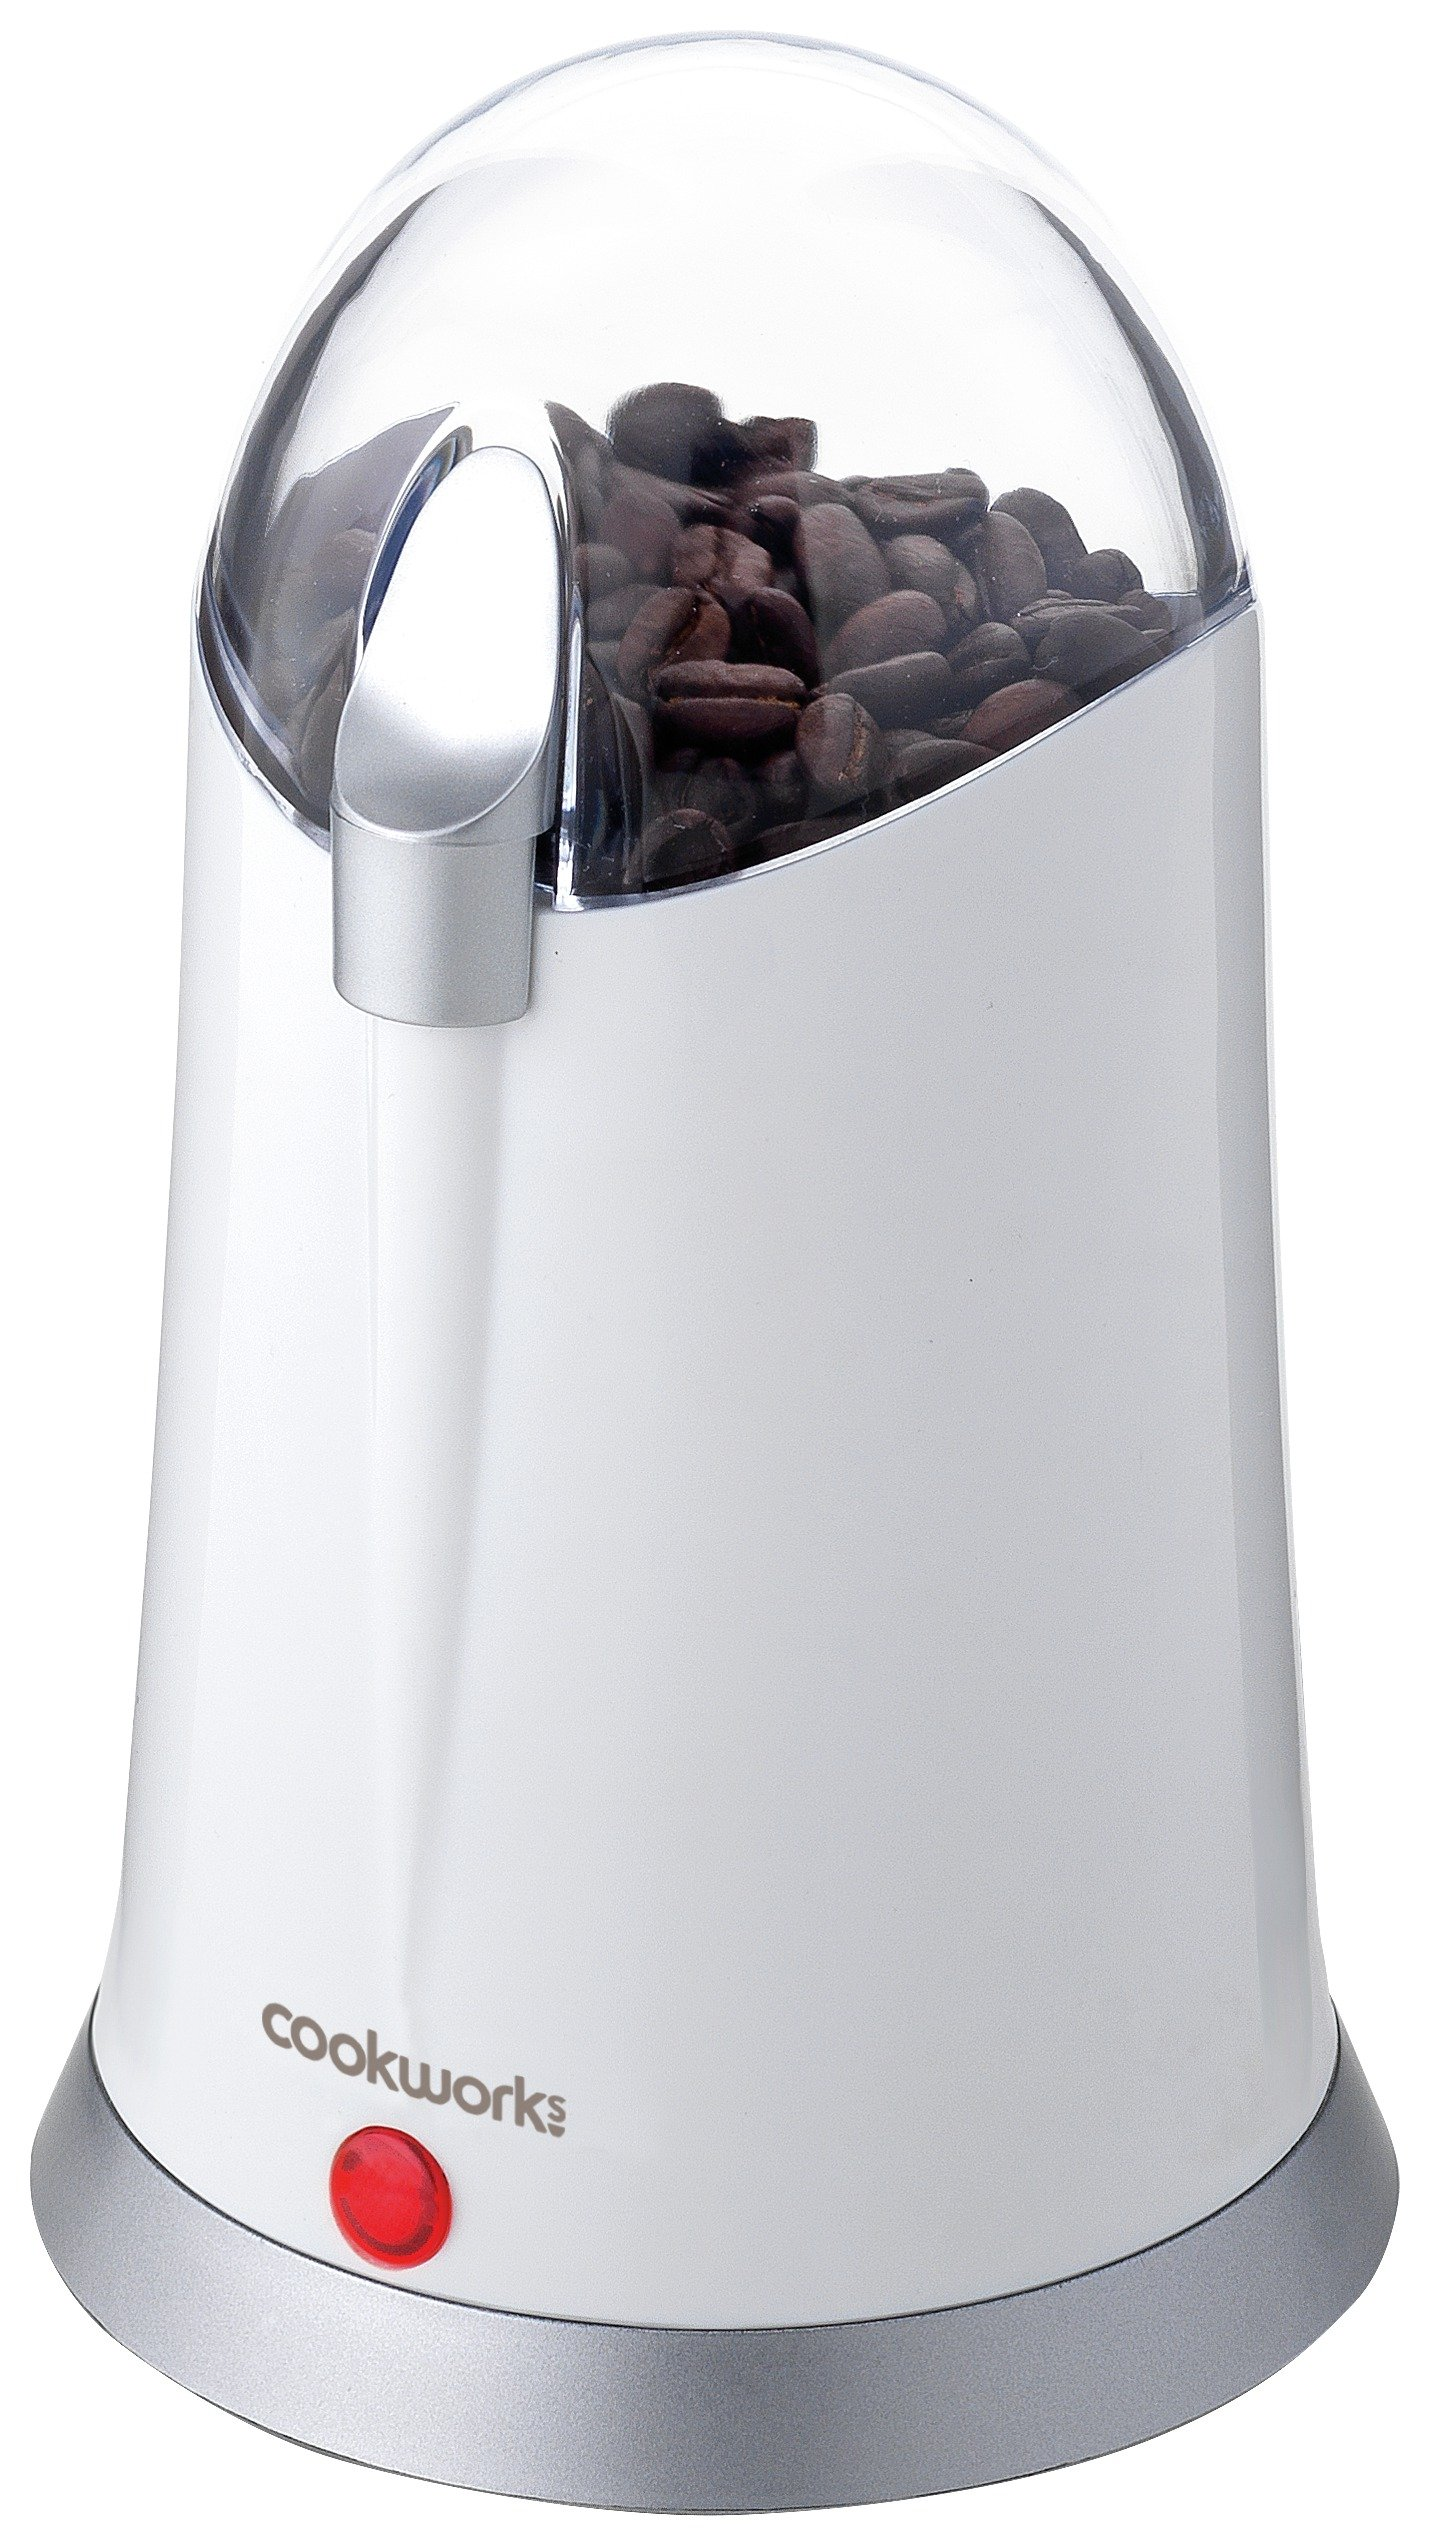 Cookworks Coffee and Herb Grinder - White